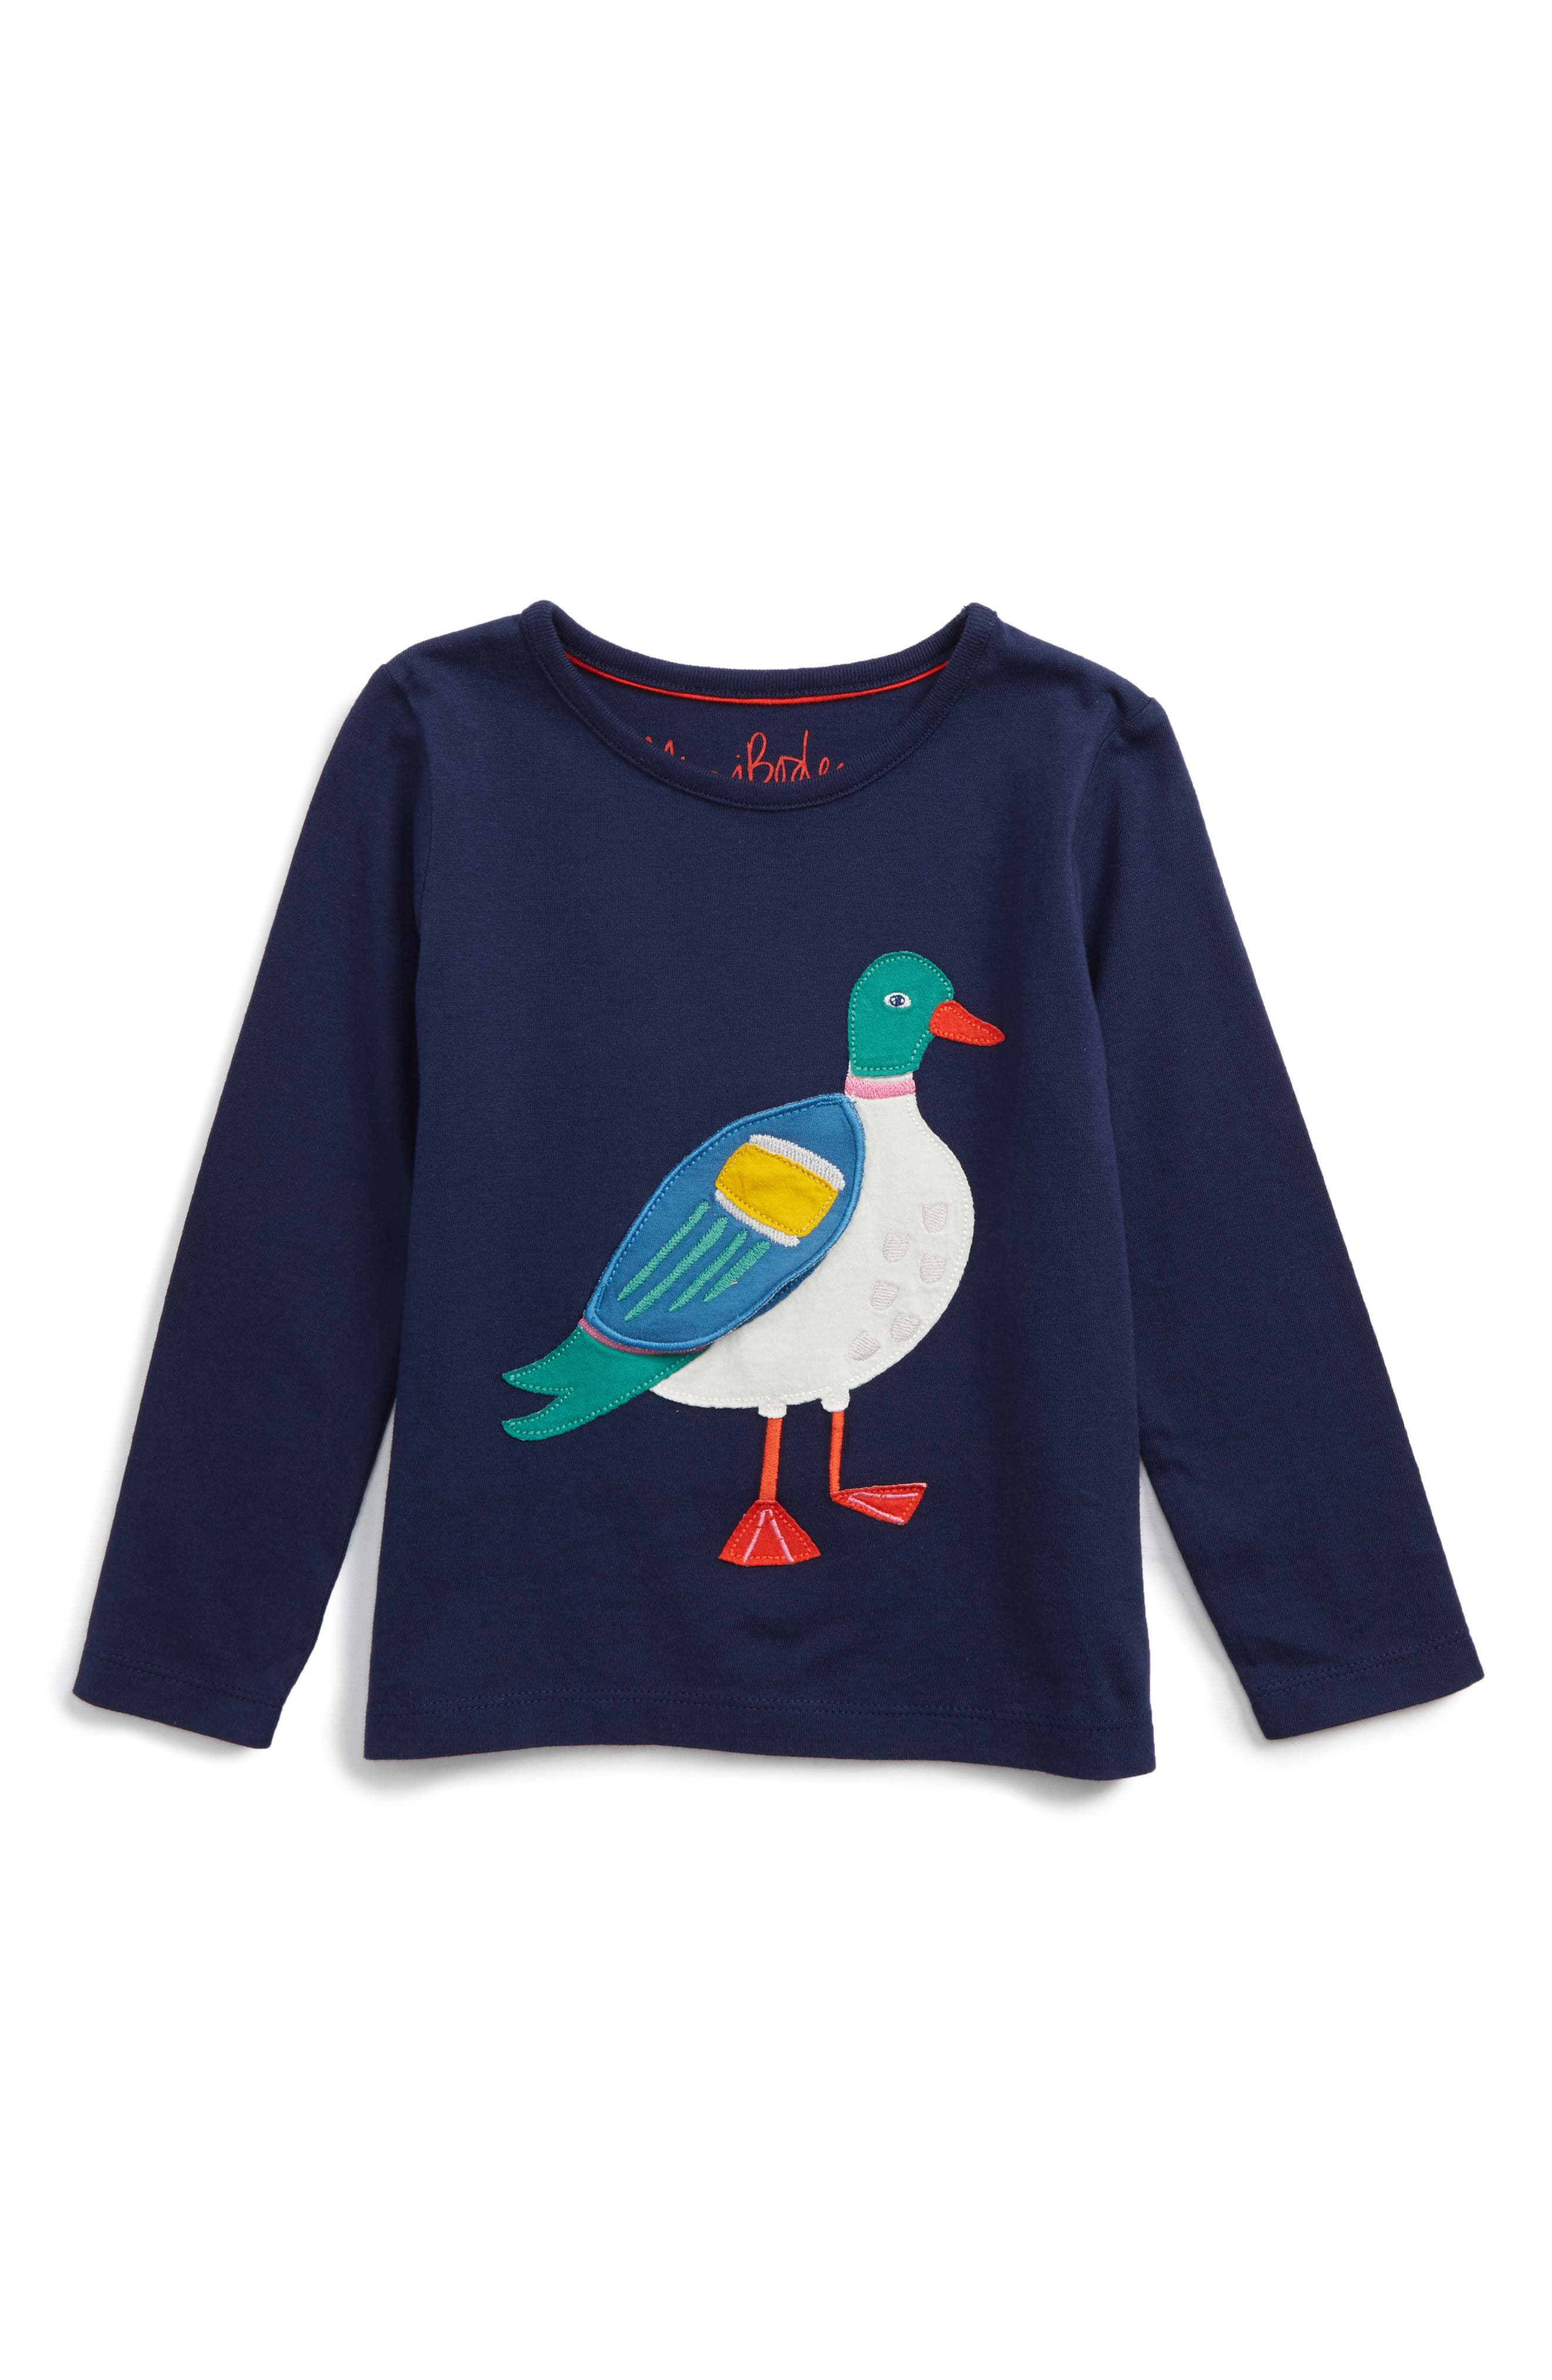 Main Image - Mini Boden River Bank Appliqué Tee (Toddler Girls, Little Girls & Big Girls)